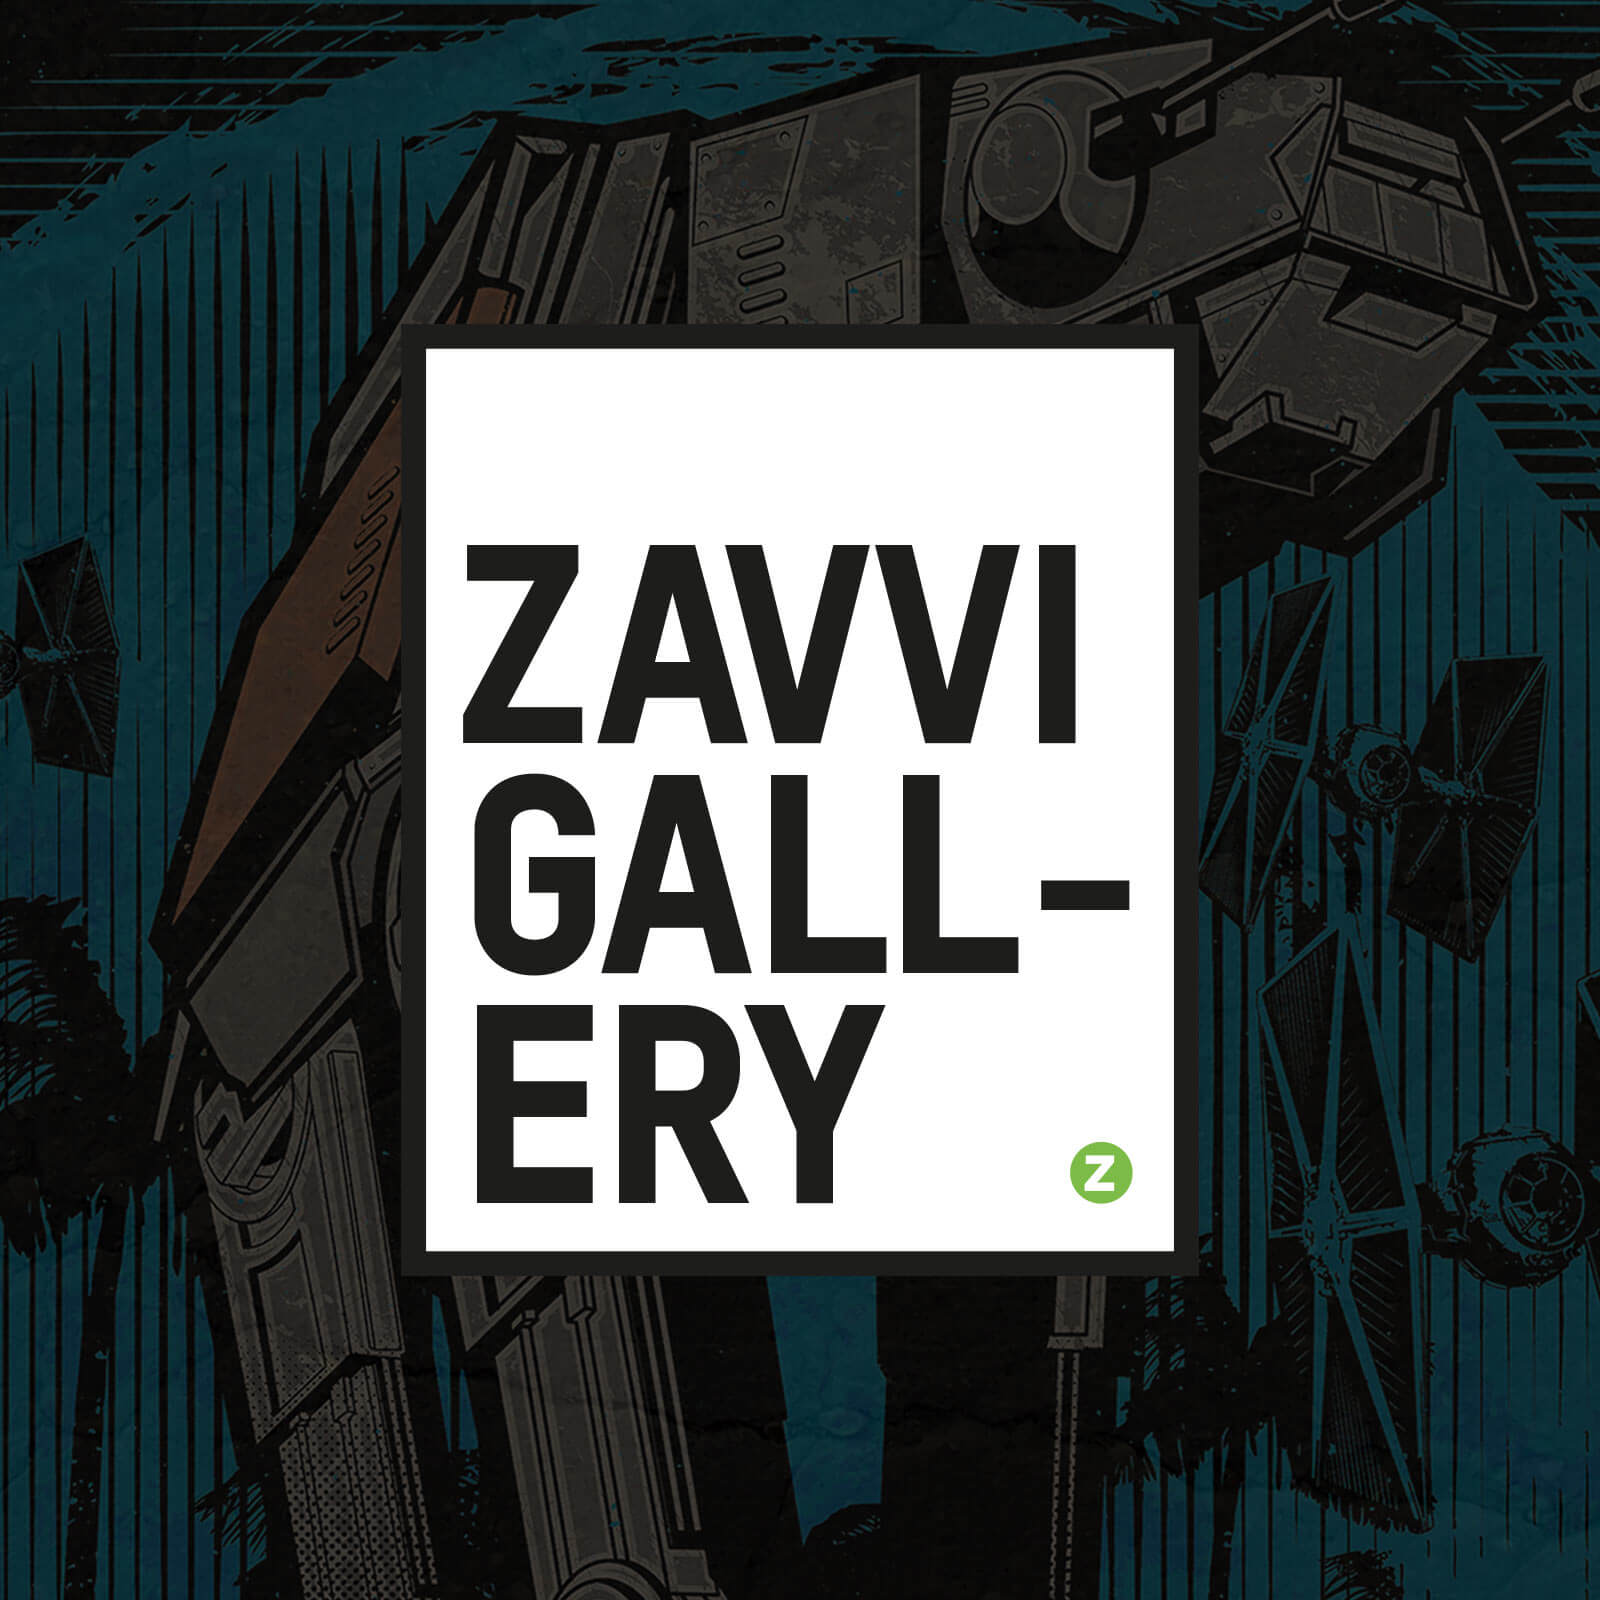 Zavvi Gallery - 3 Mystery Prints By Acme Archive Artists (Timed Sale)